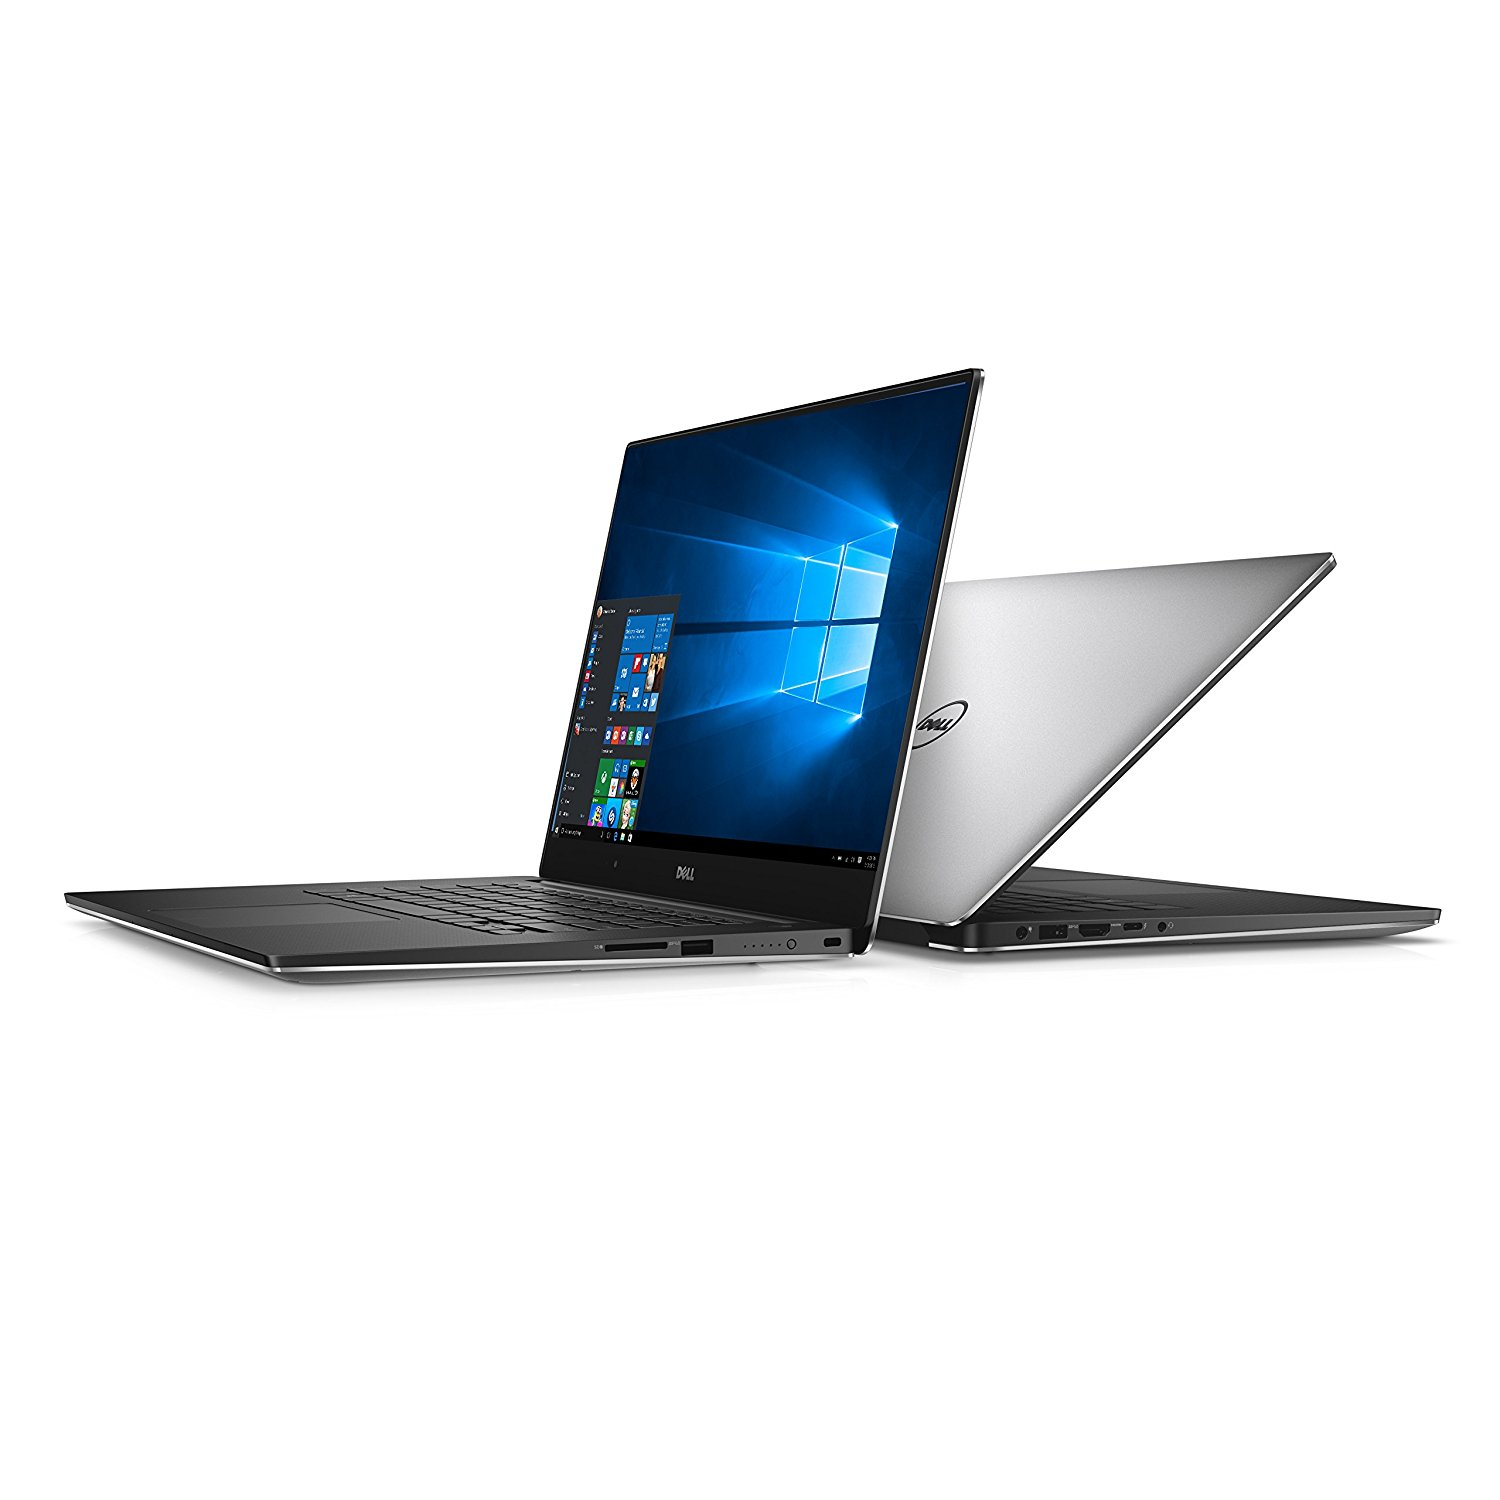 Dell XPS 15 9560 Kaby Lake Windows 10